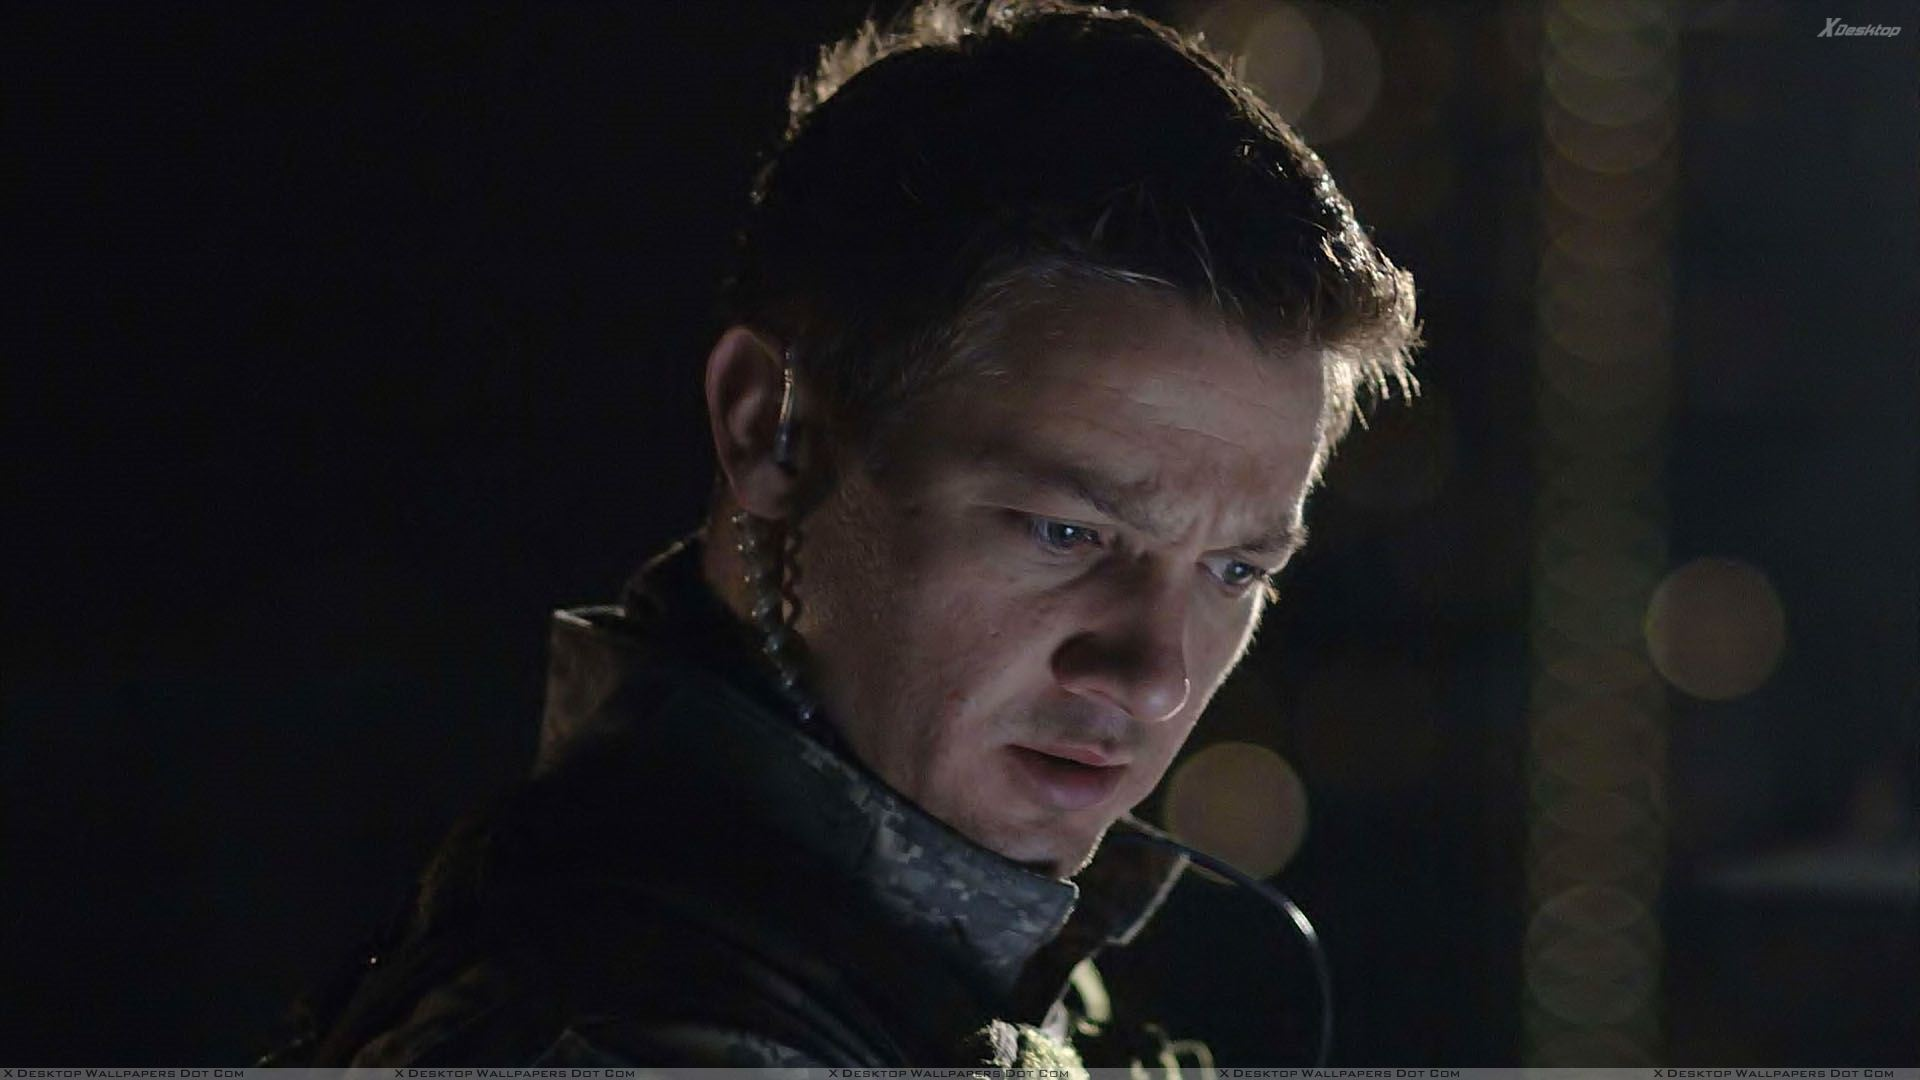 1920x1080 - Jeremy Renner Wallpapers 34